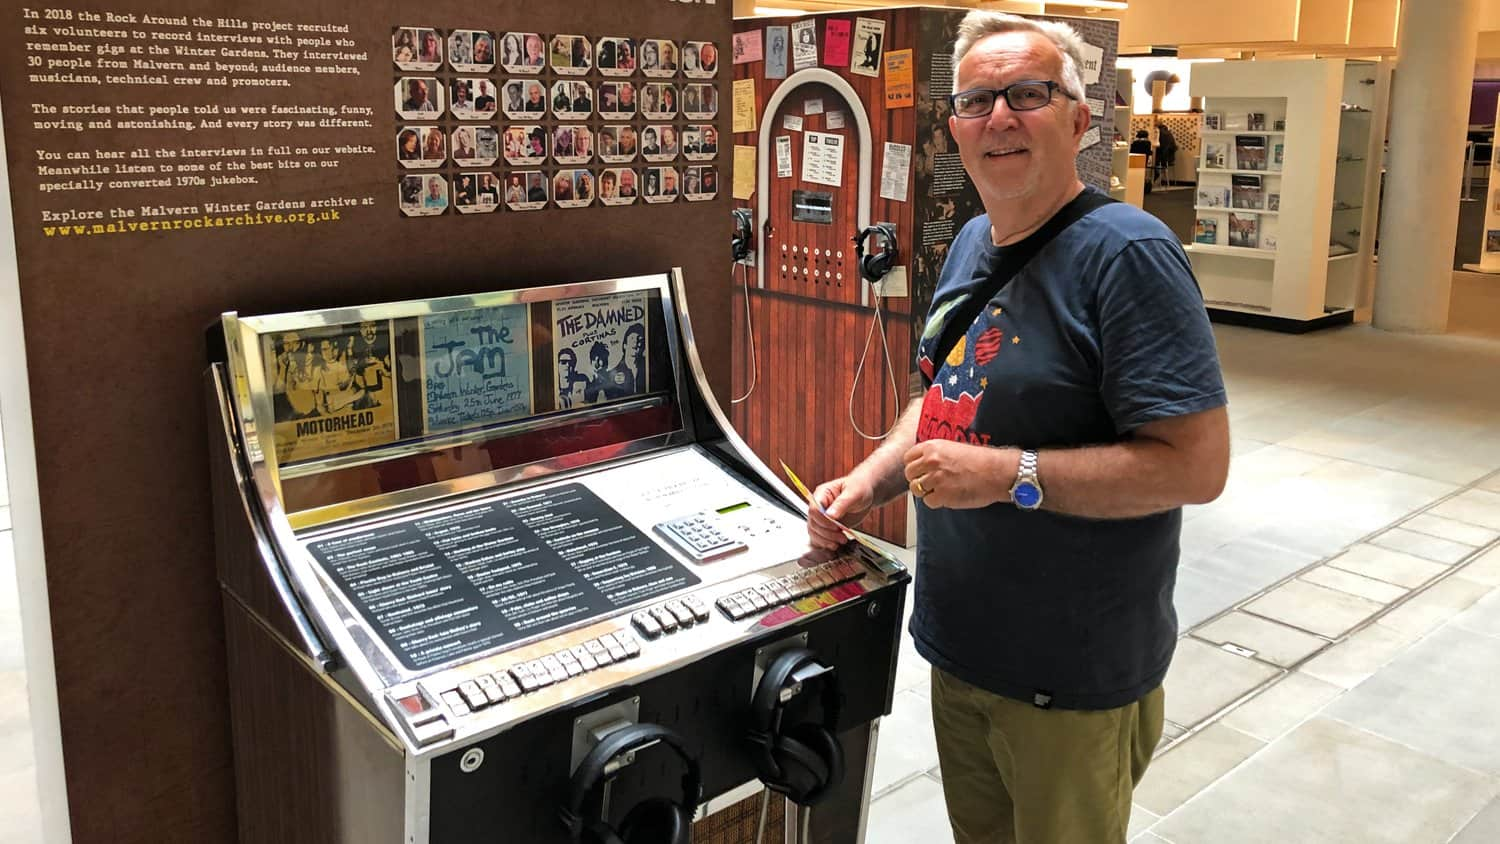 Visitor interacting with the 1970's Jukebox